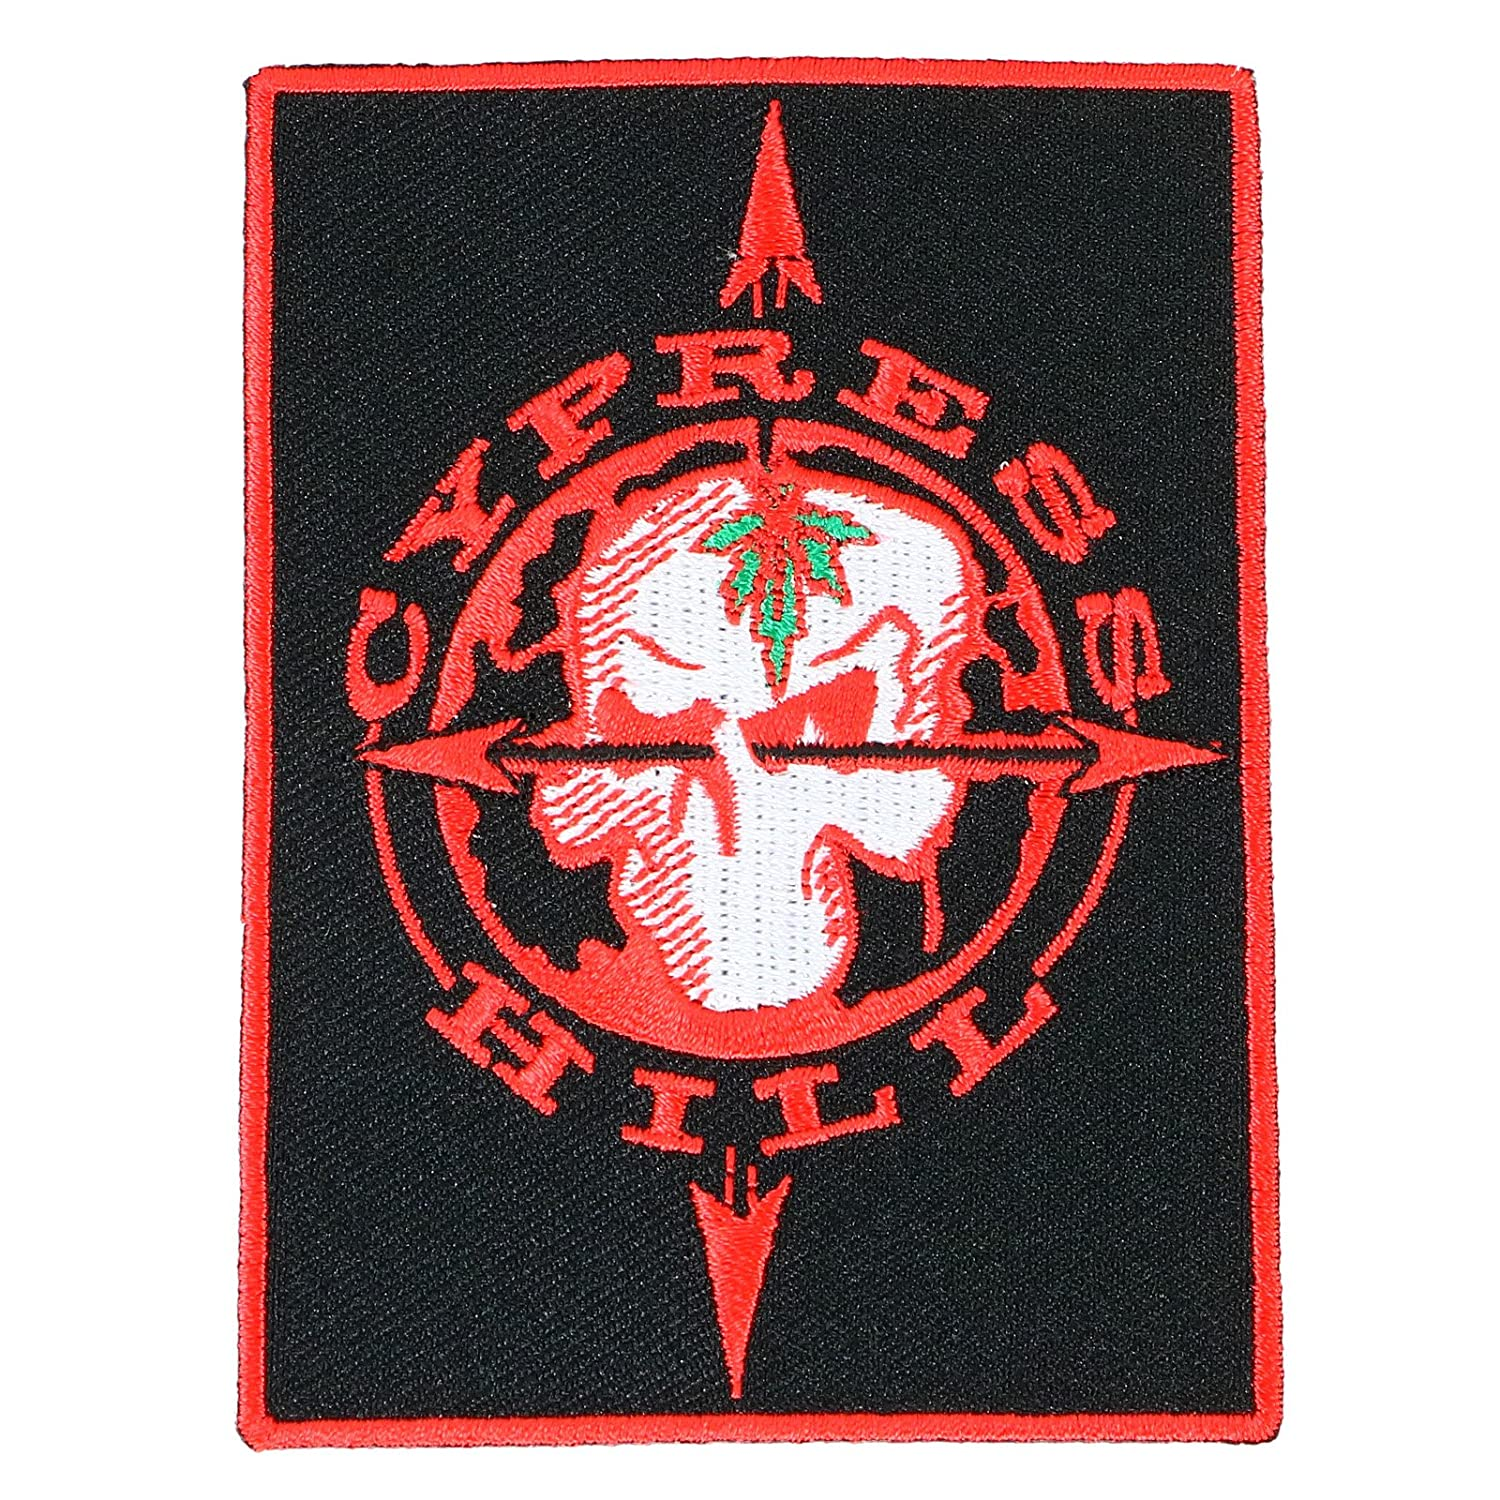 Cypress Hill Skull and Compass Sew on Glue On Patch CONTROL INDUSTRY